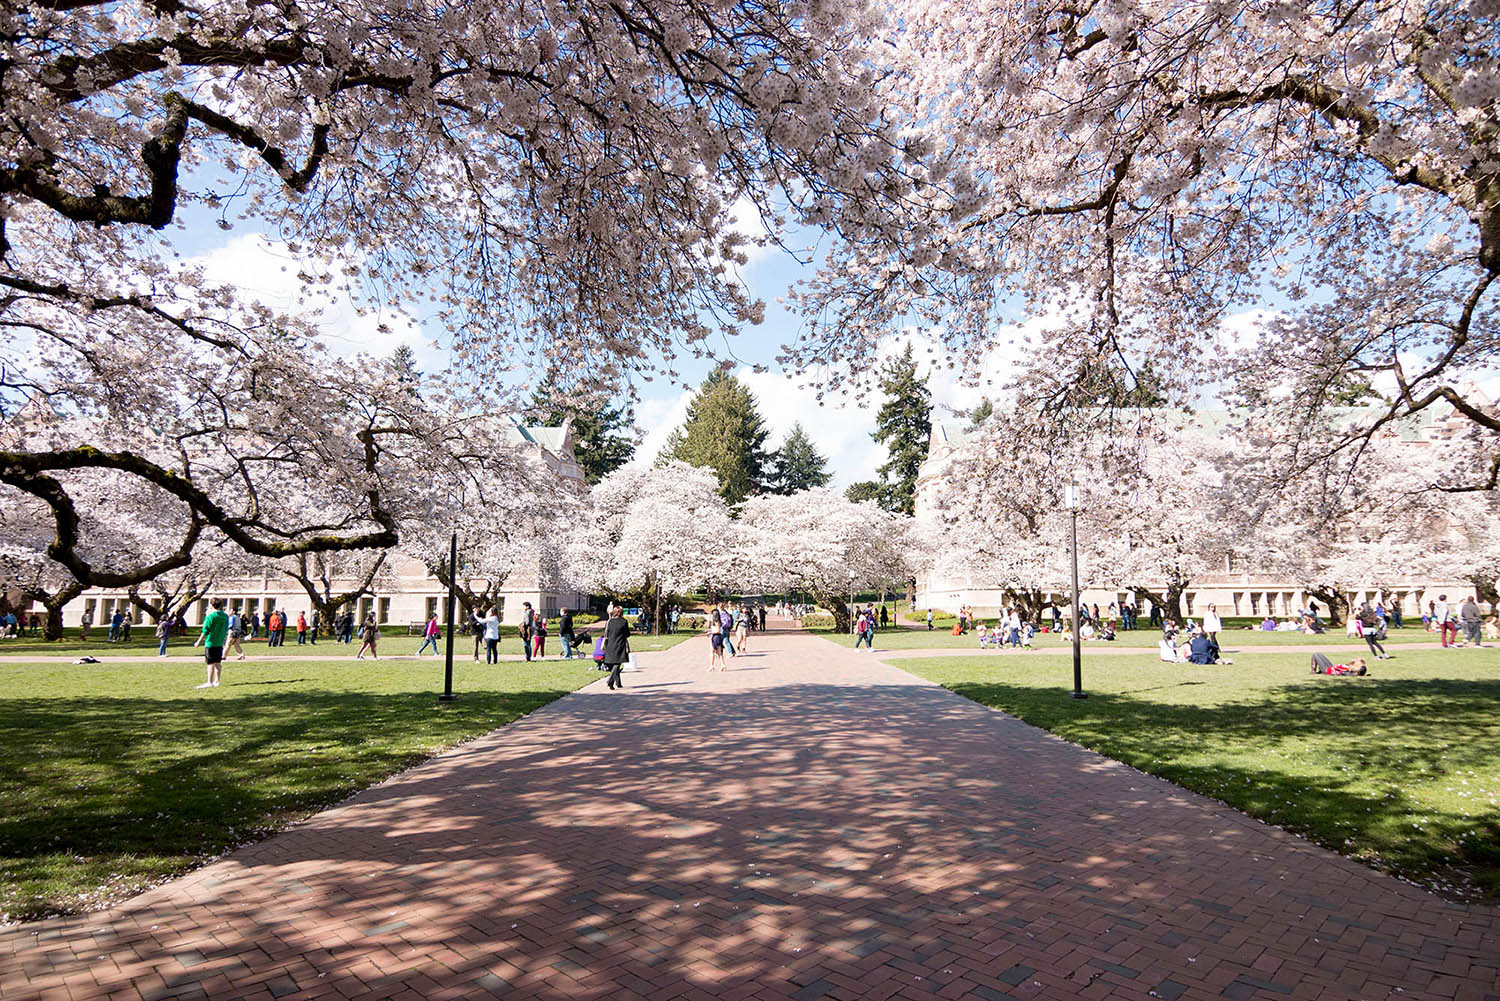 Photo of cherry blossoms and trees hanging over the University quad